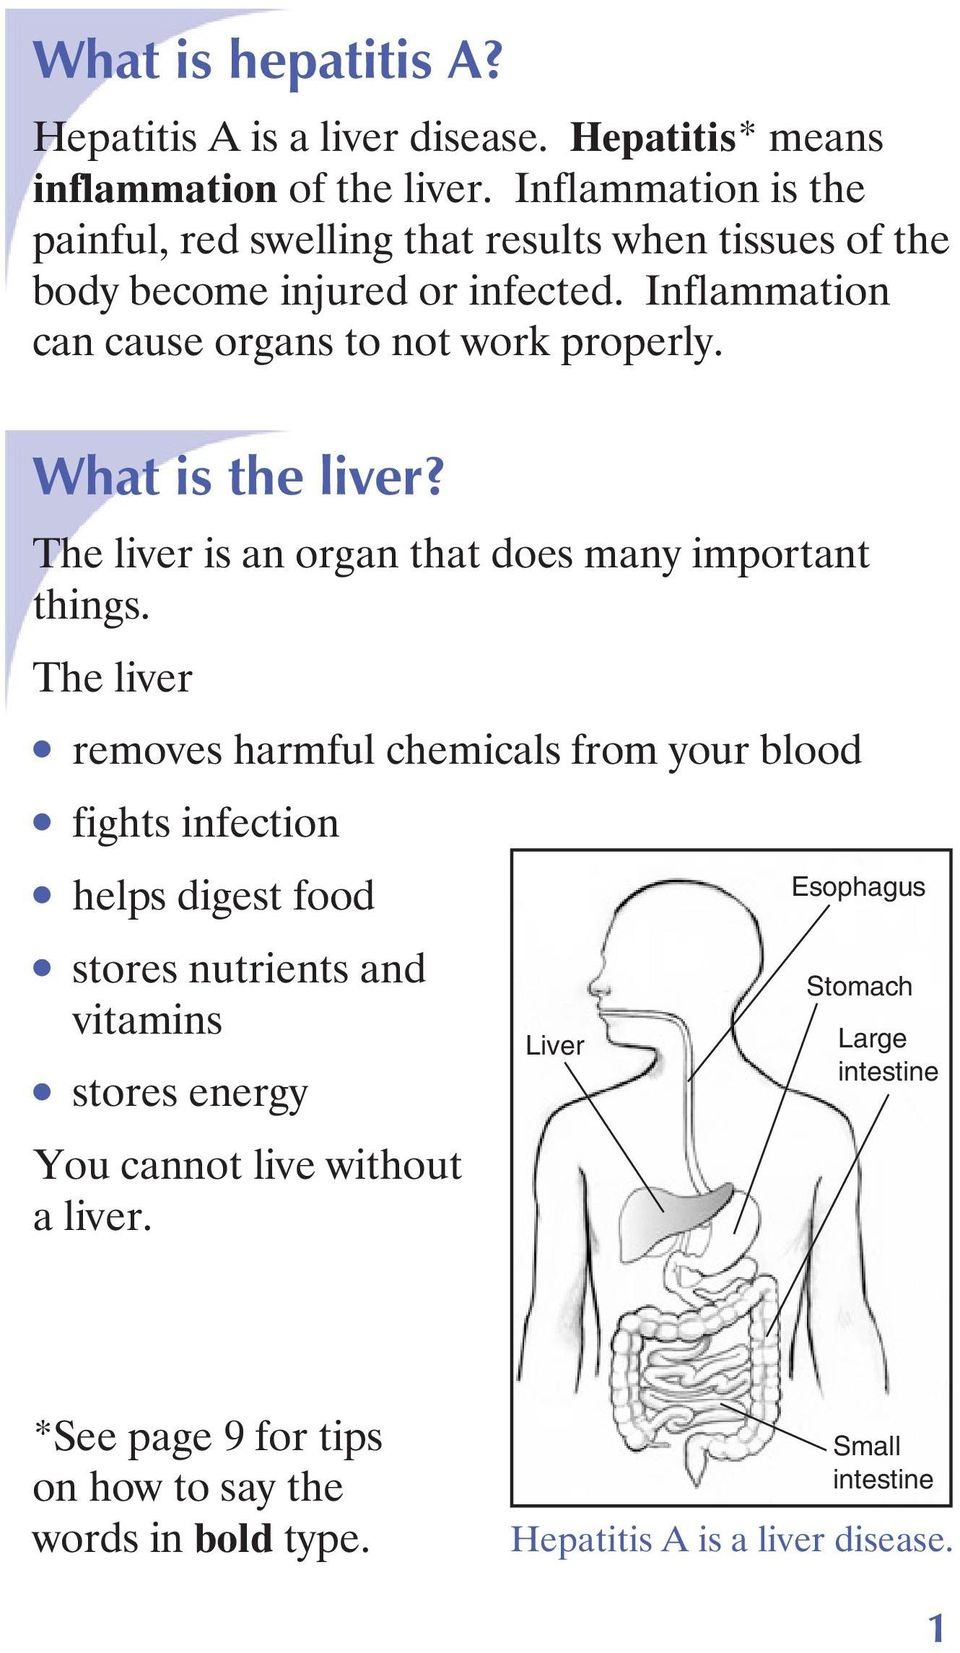 What is the liver? The liver is an organ that does many important things.